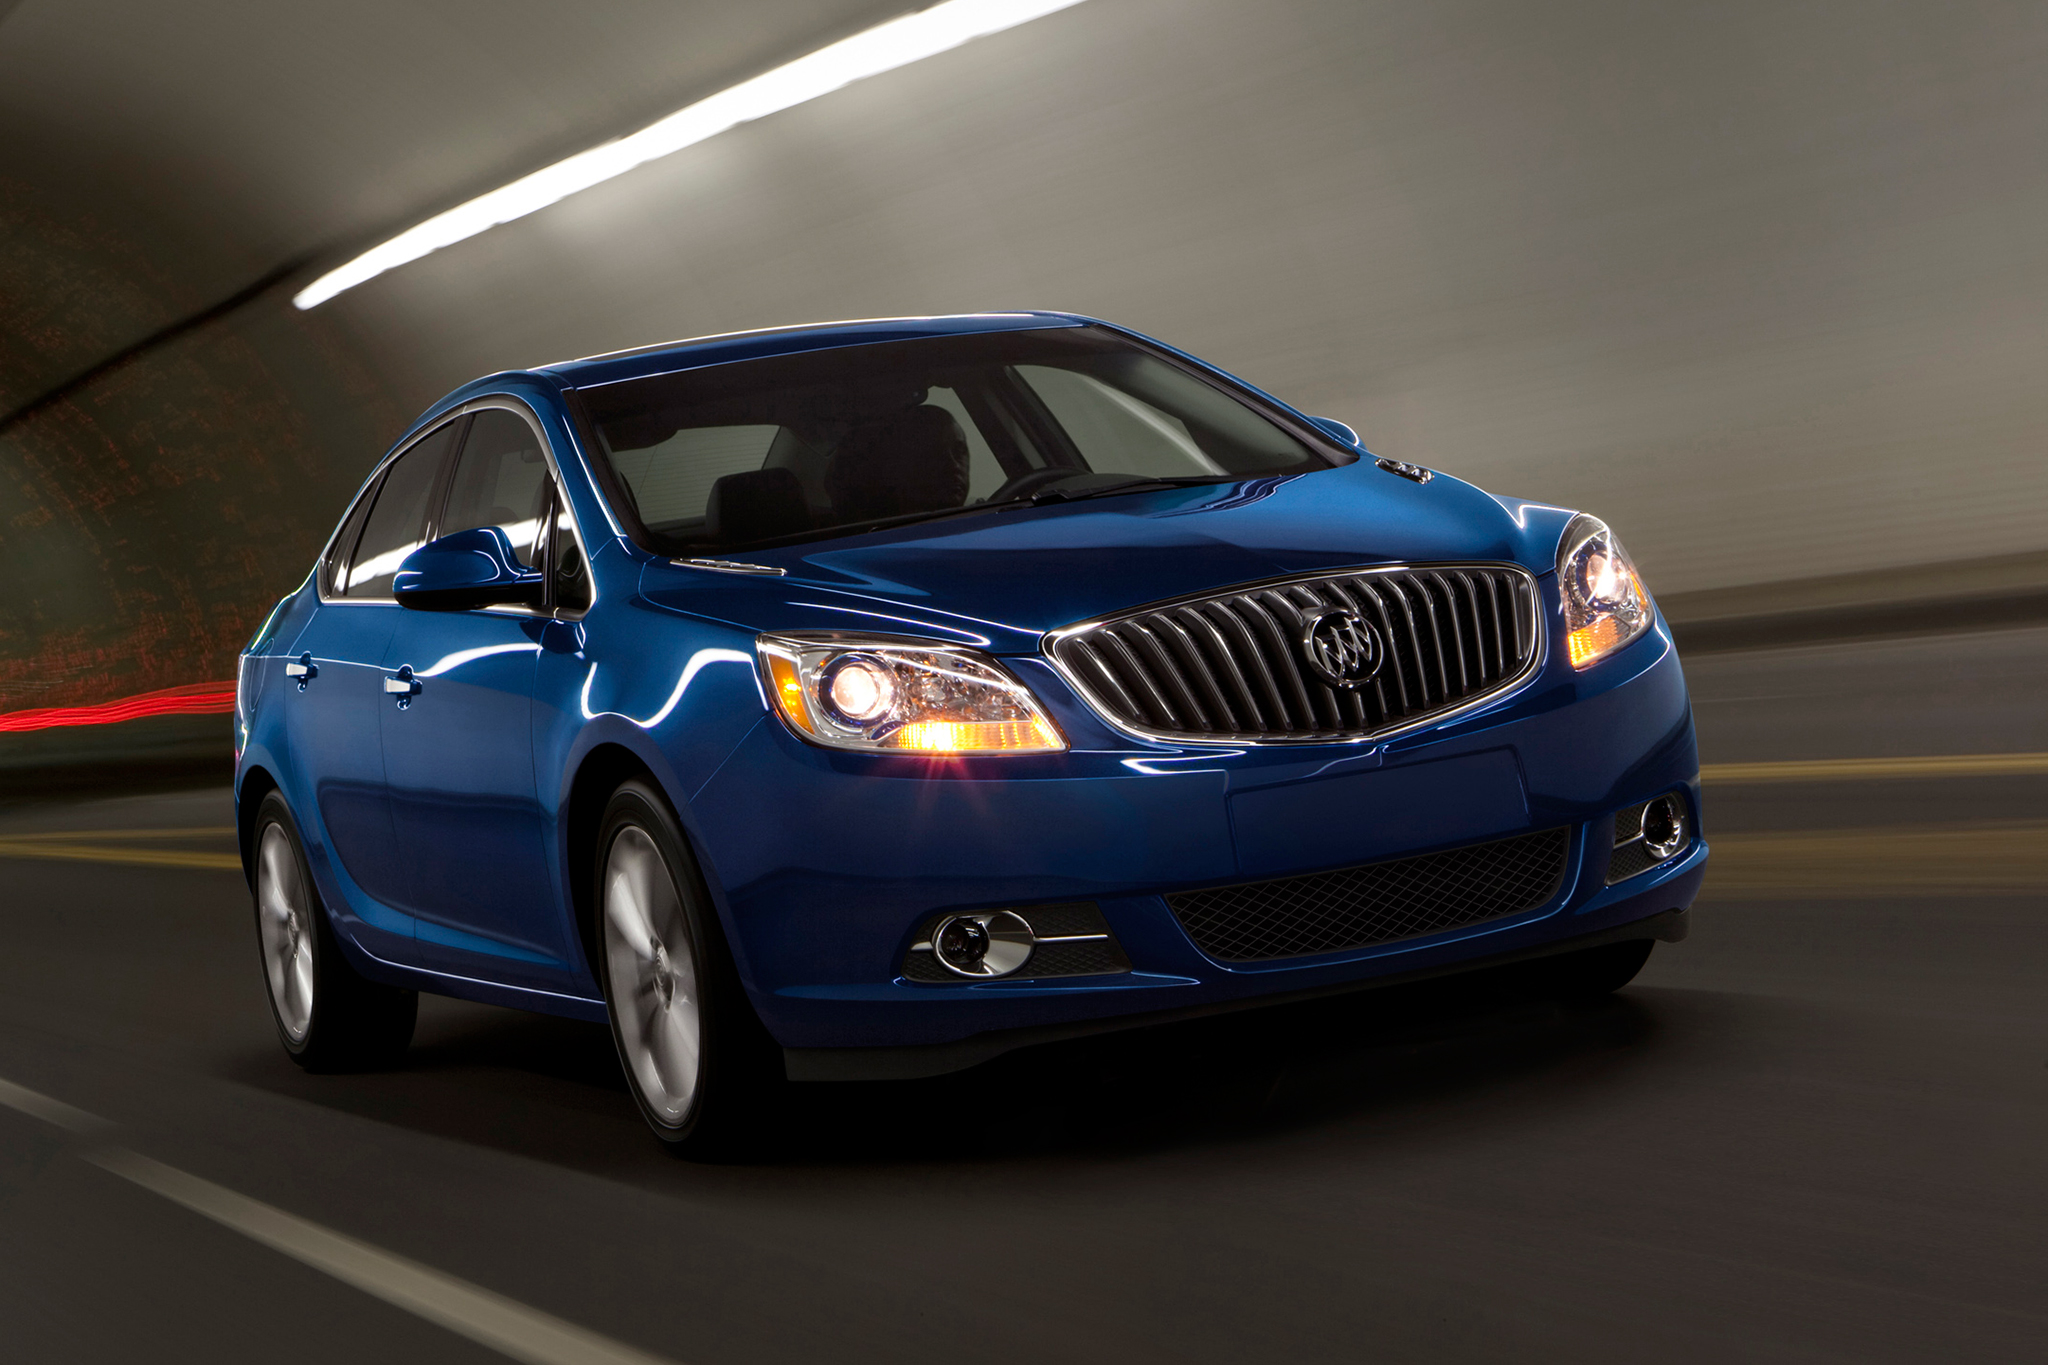 2015 Buick Verano Gets Appearance Package, KEEPS Manual Option